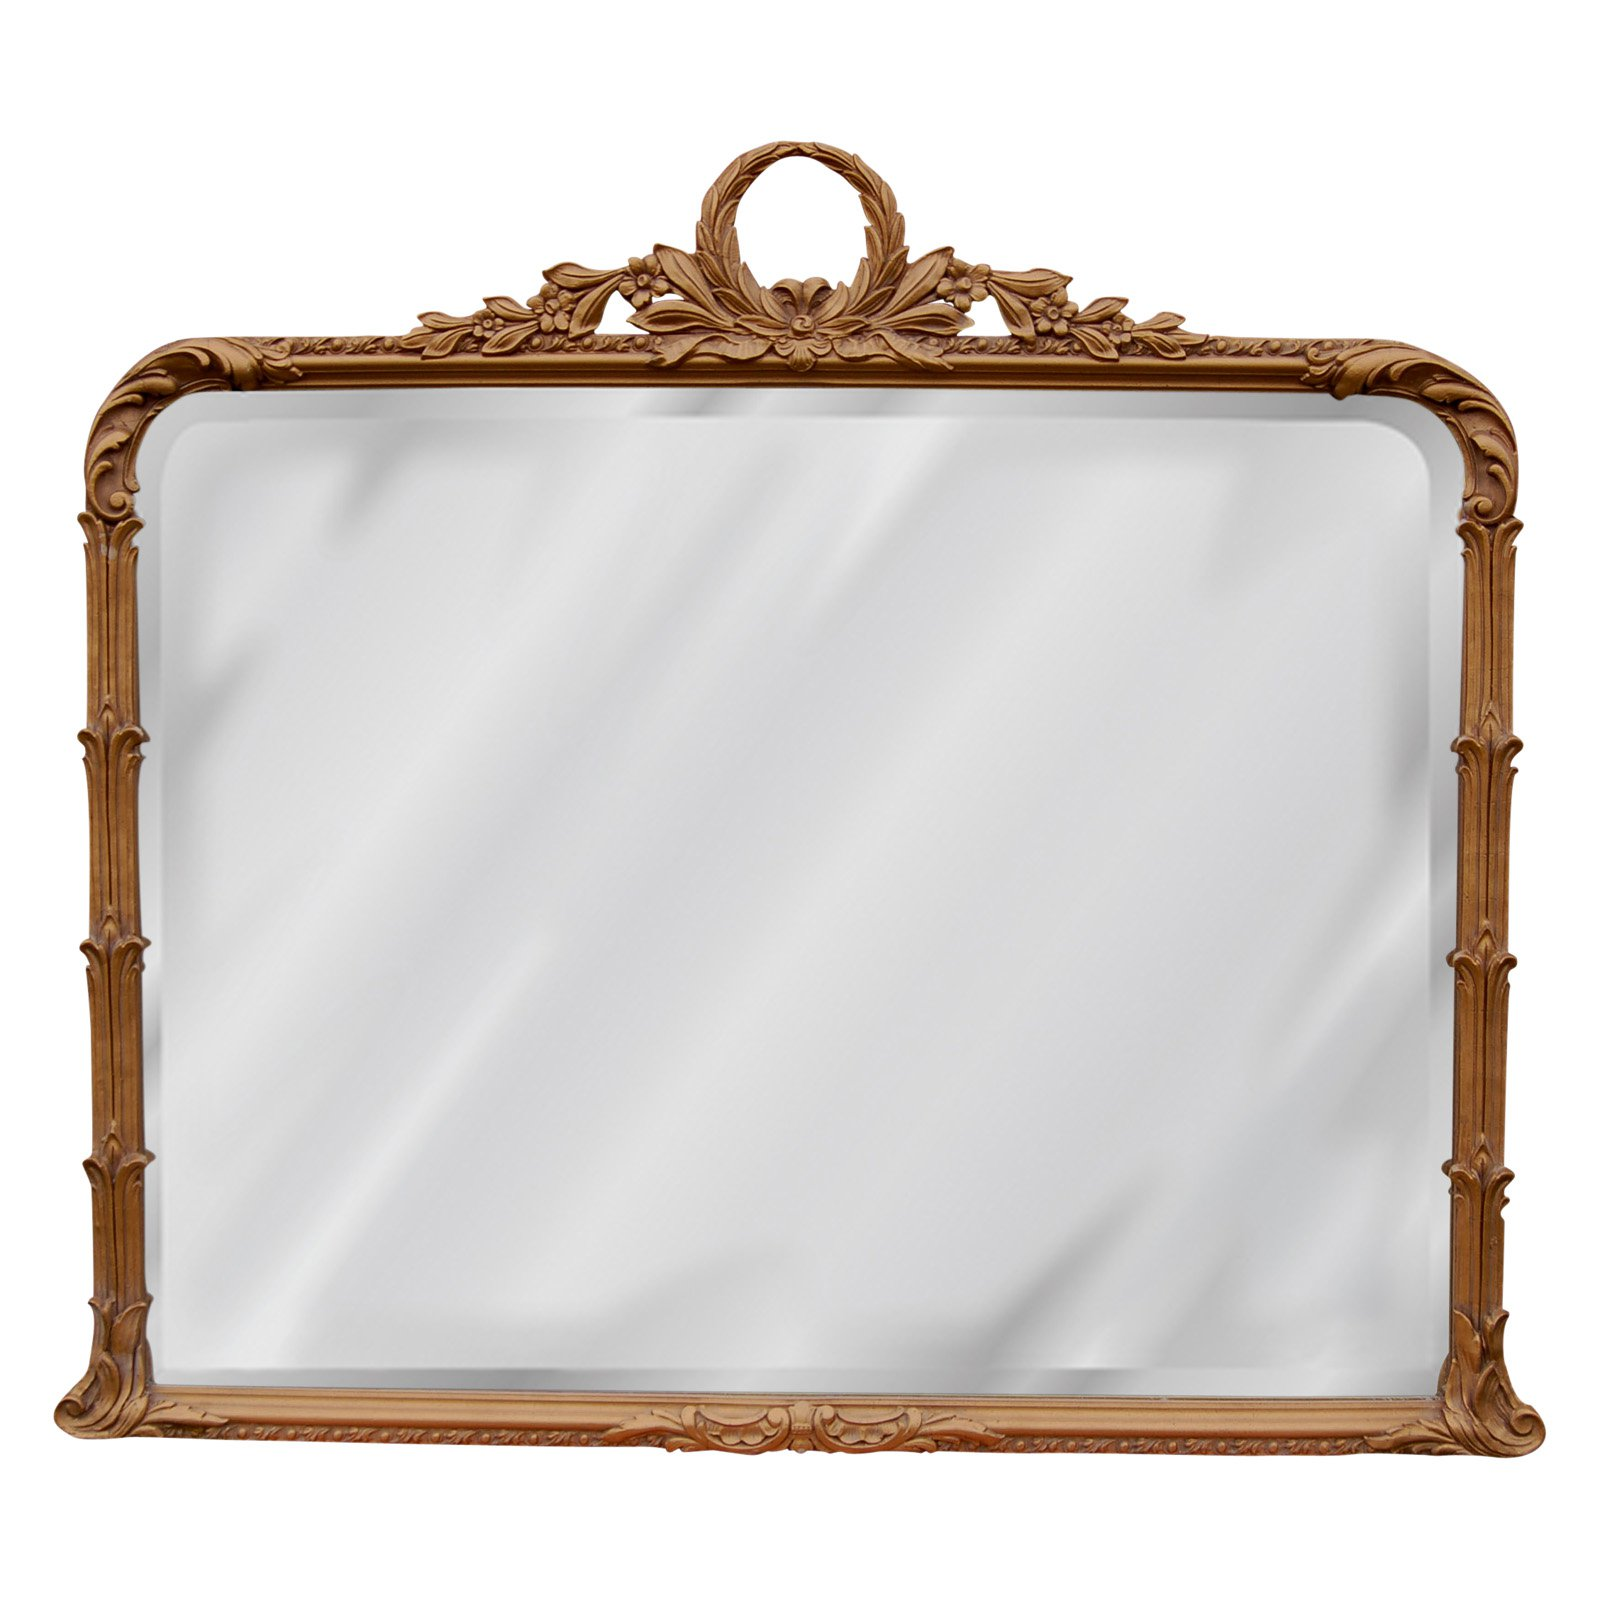 Hickory Manor House Classical Arch Buffet Mirror - 32.5W x 37.25H in.